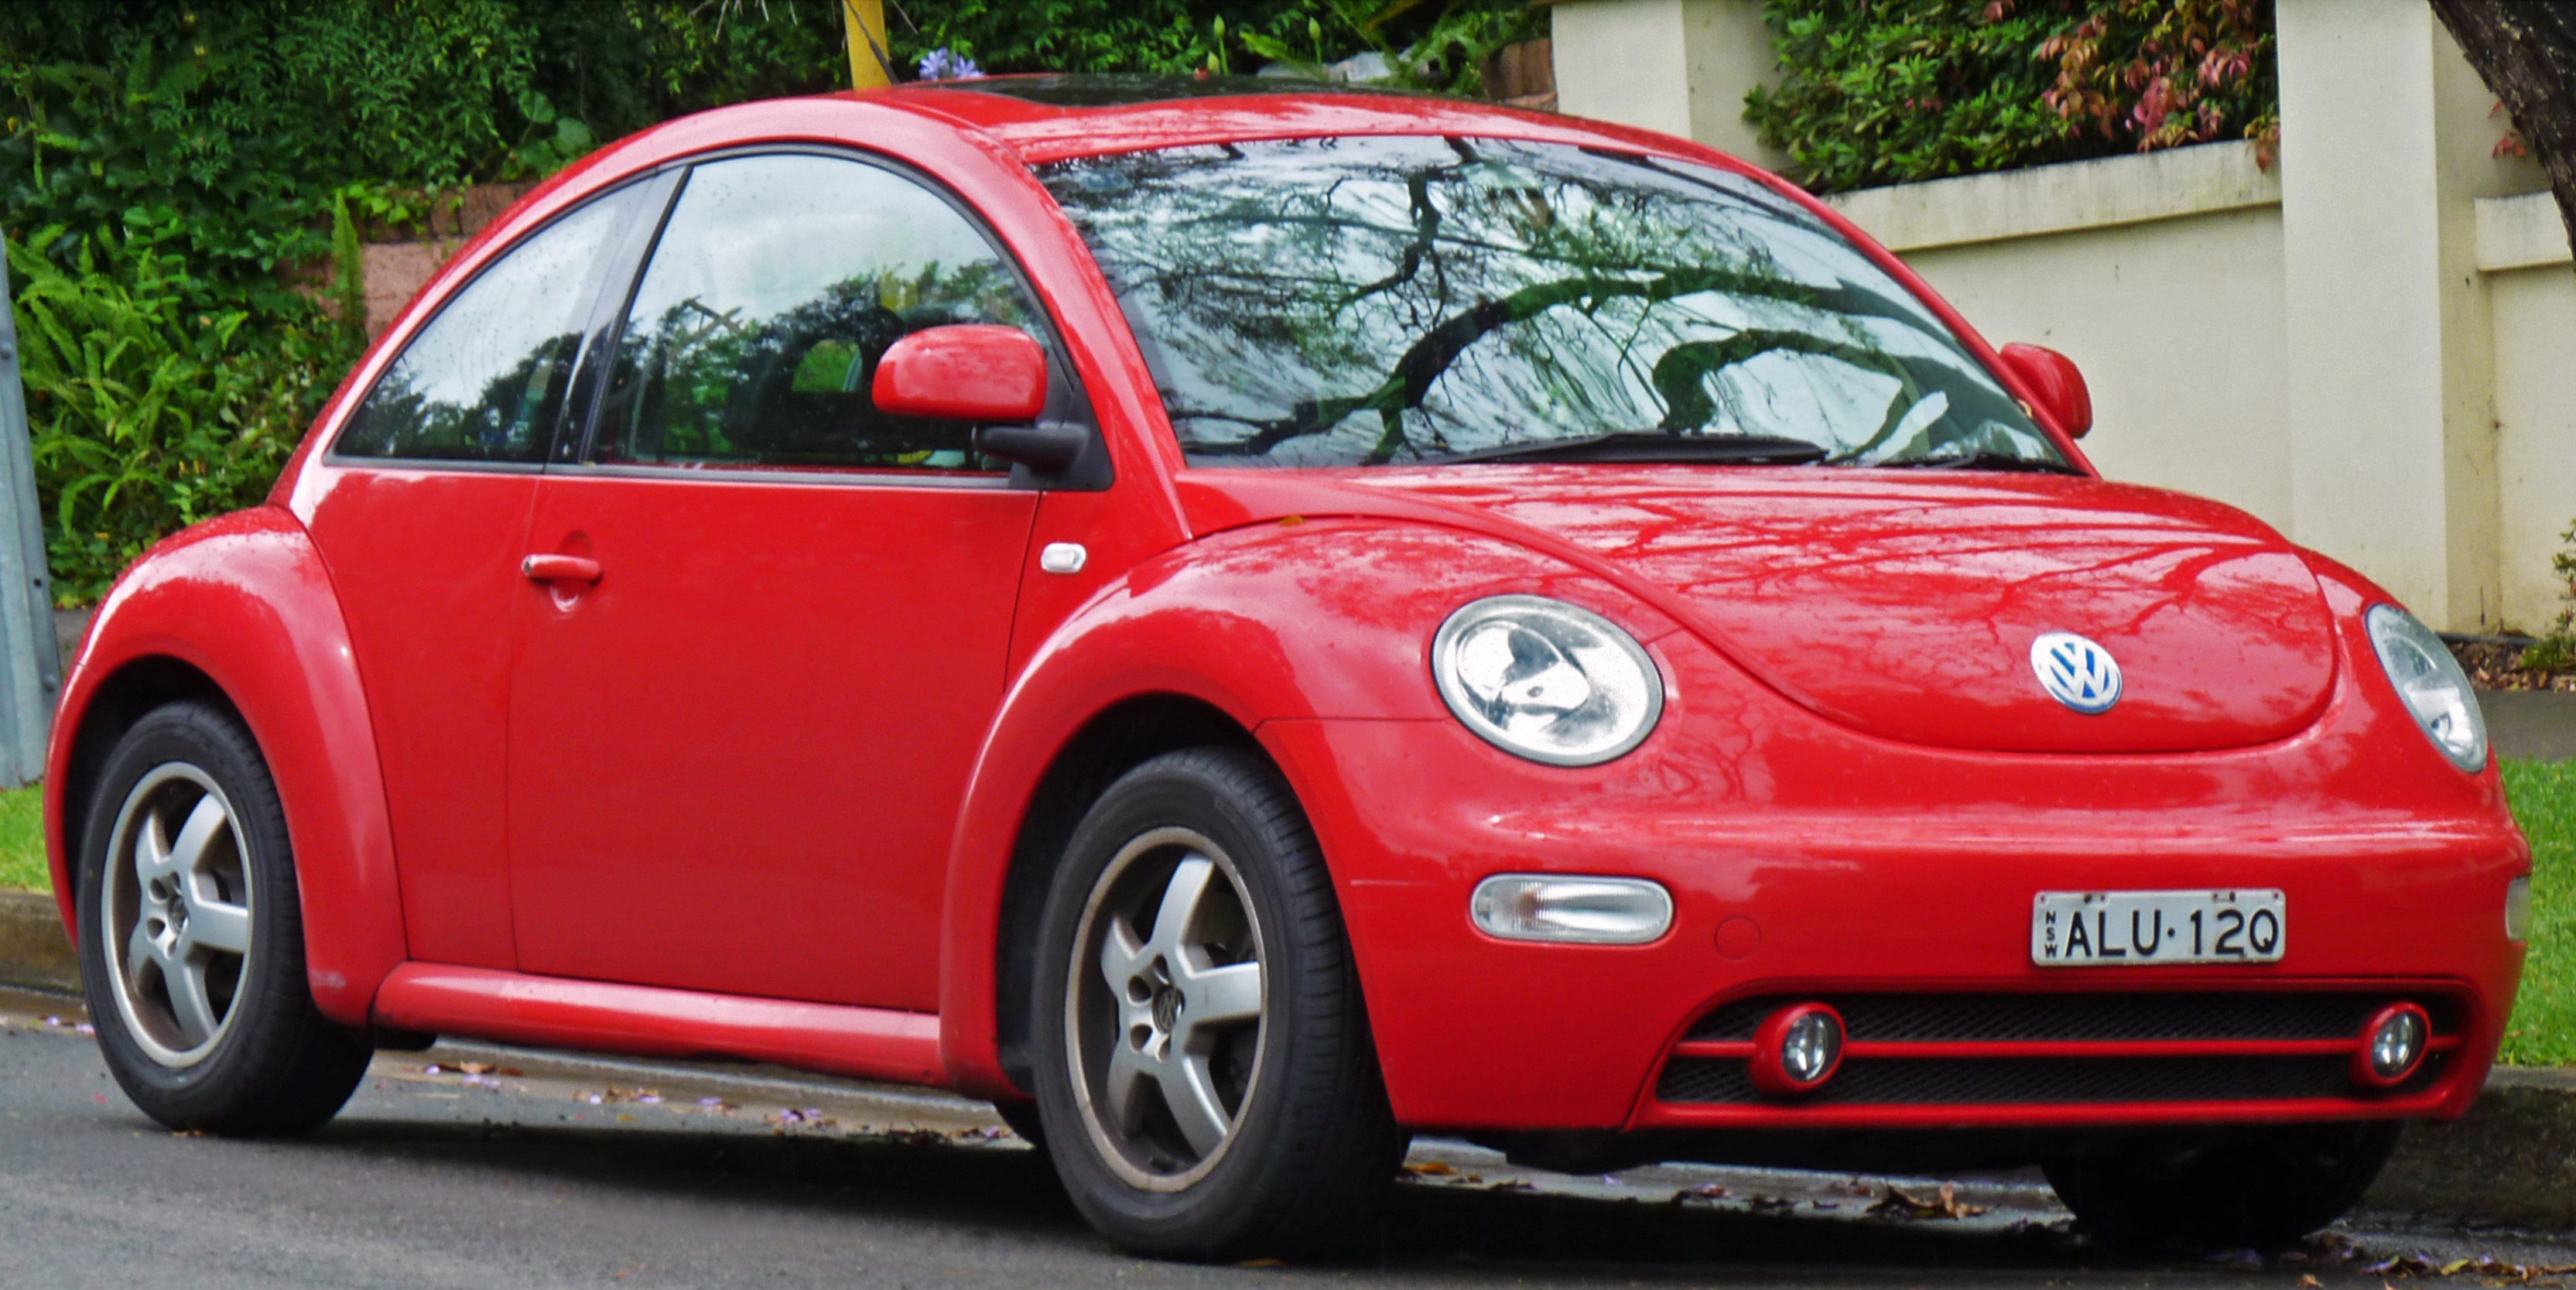 Forum New beetle / Coccinelle  Portail